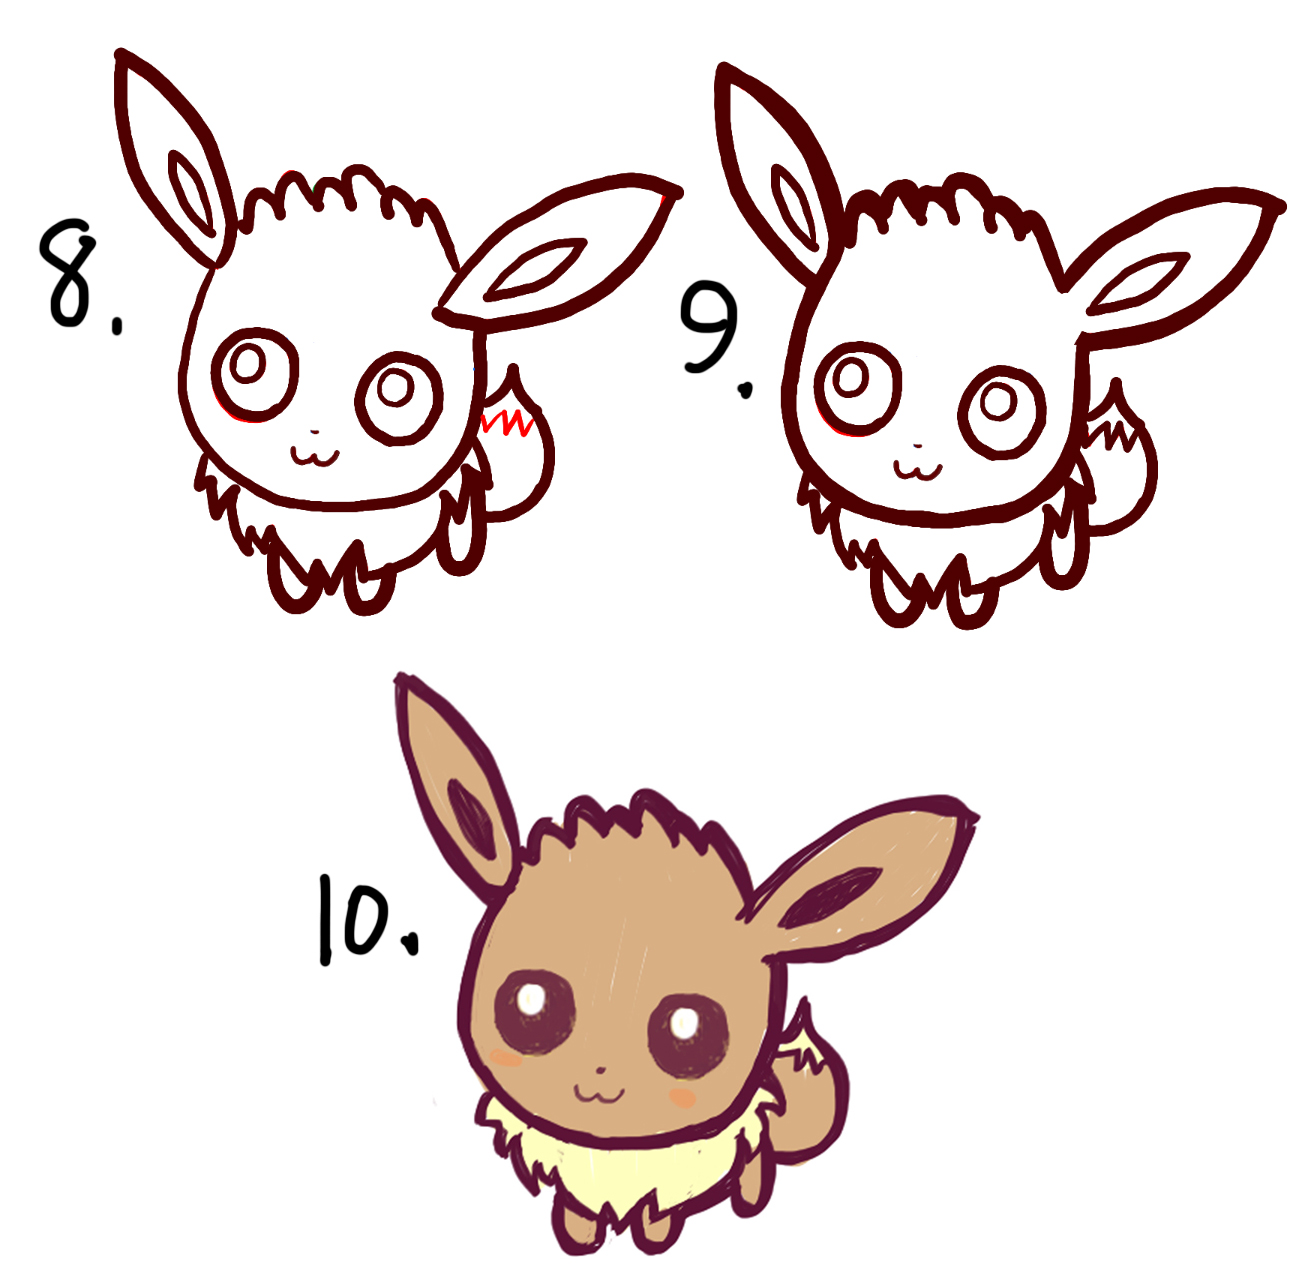 1312x1264 How To Draw Cute Baby Chibi Eevee From Pokemon Easy Step By Step